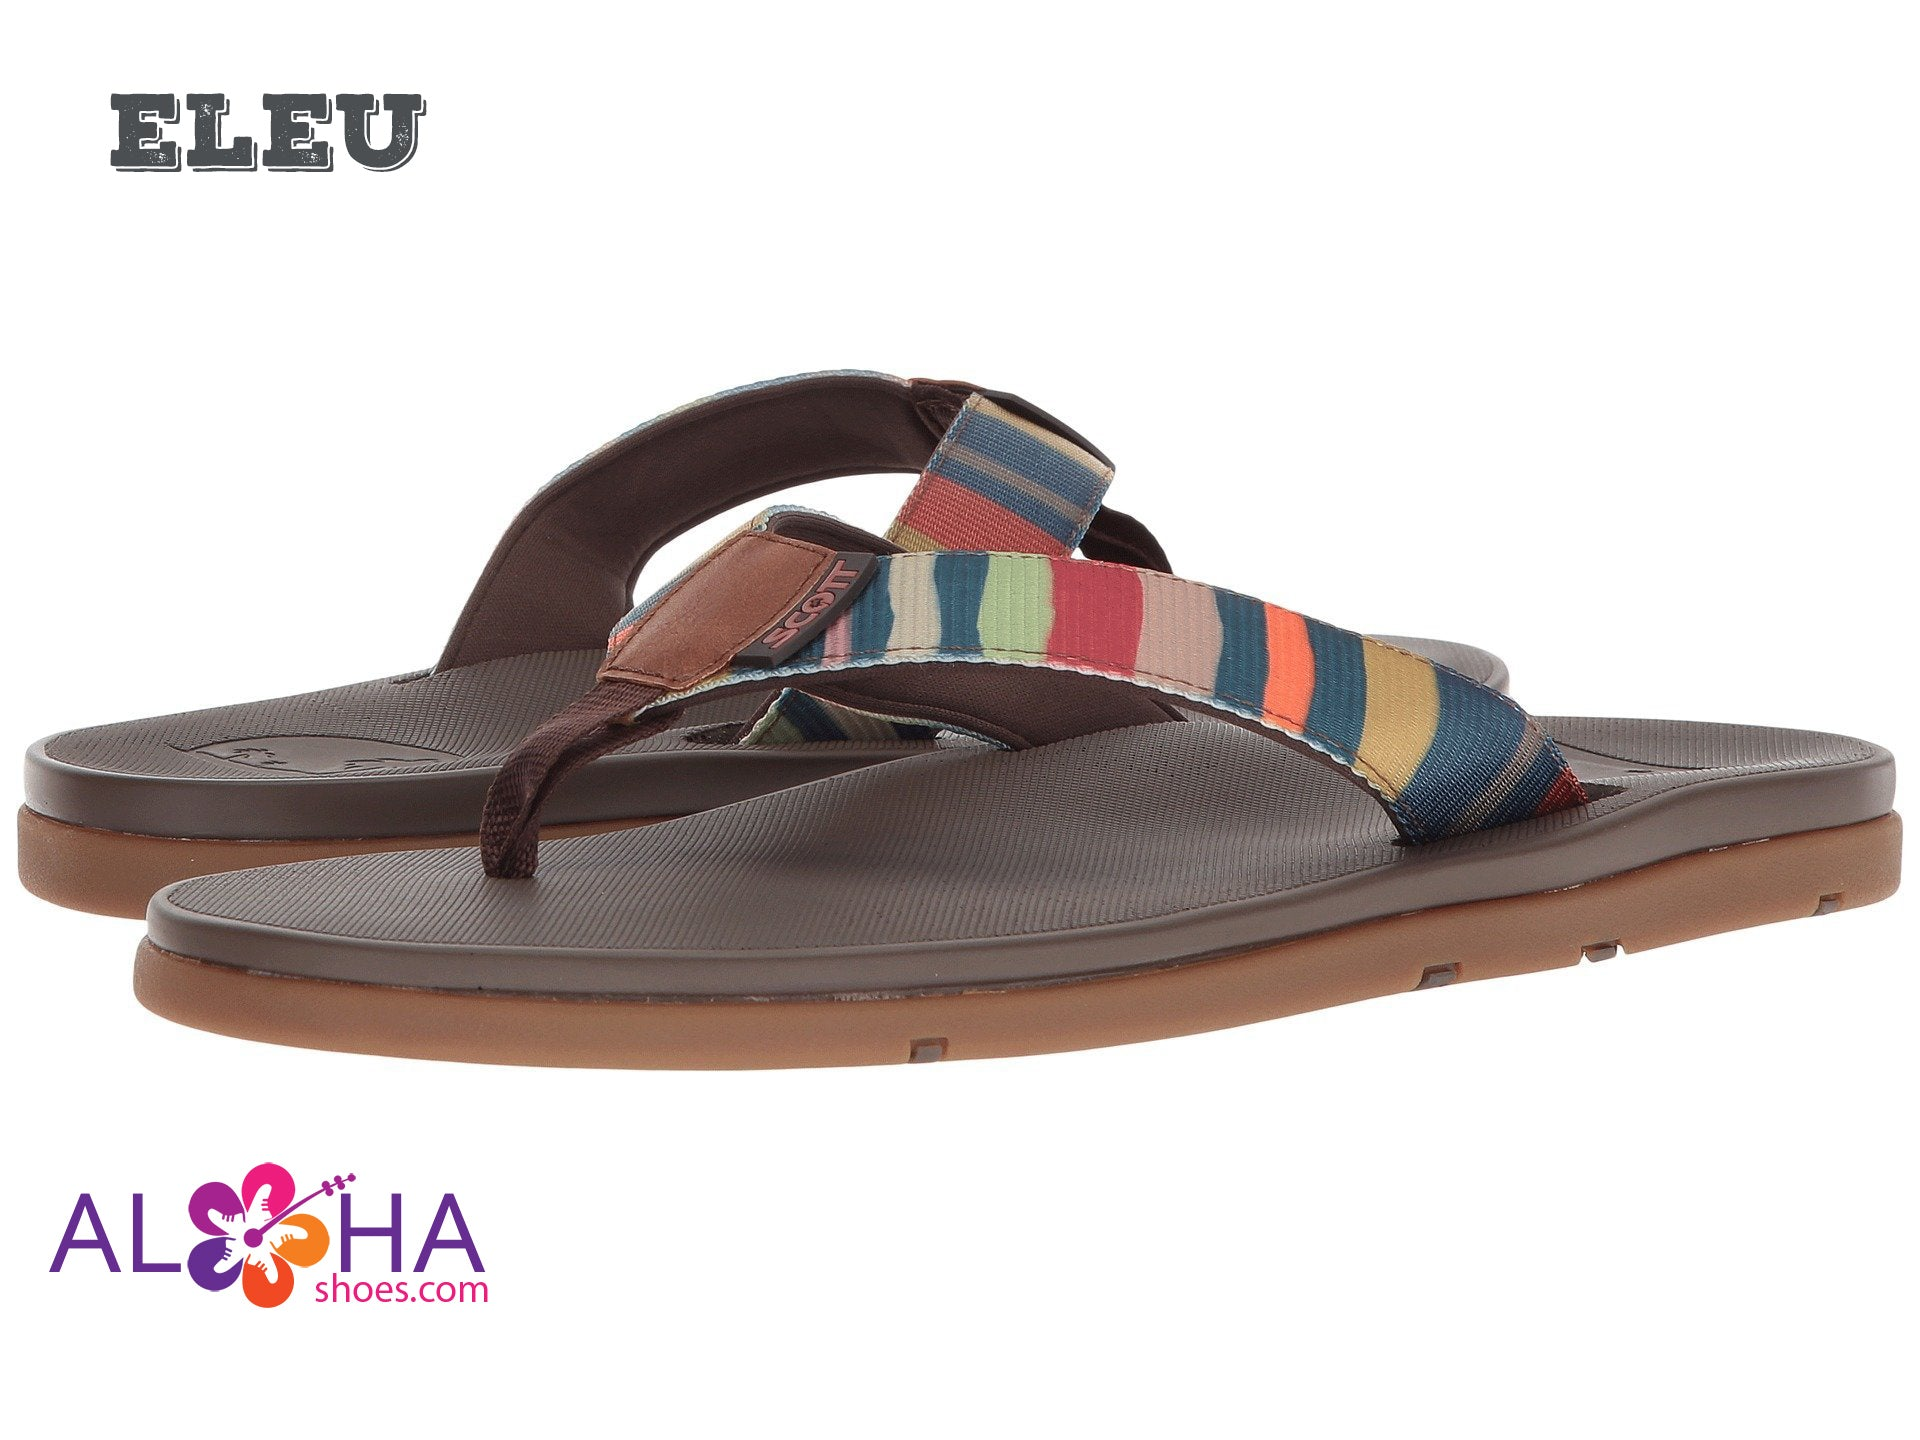 Men's Scott Hawaii Eleu Rainbow Strap Flip Flops - AlohaShoes.com